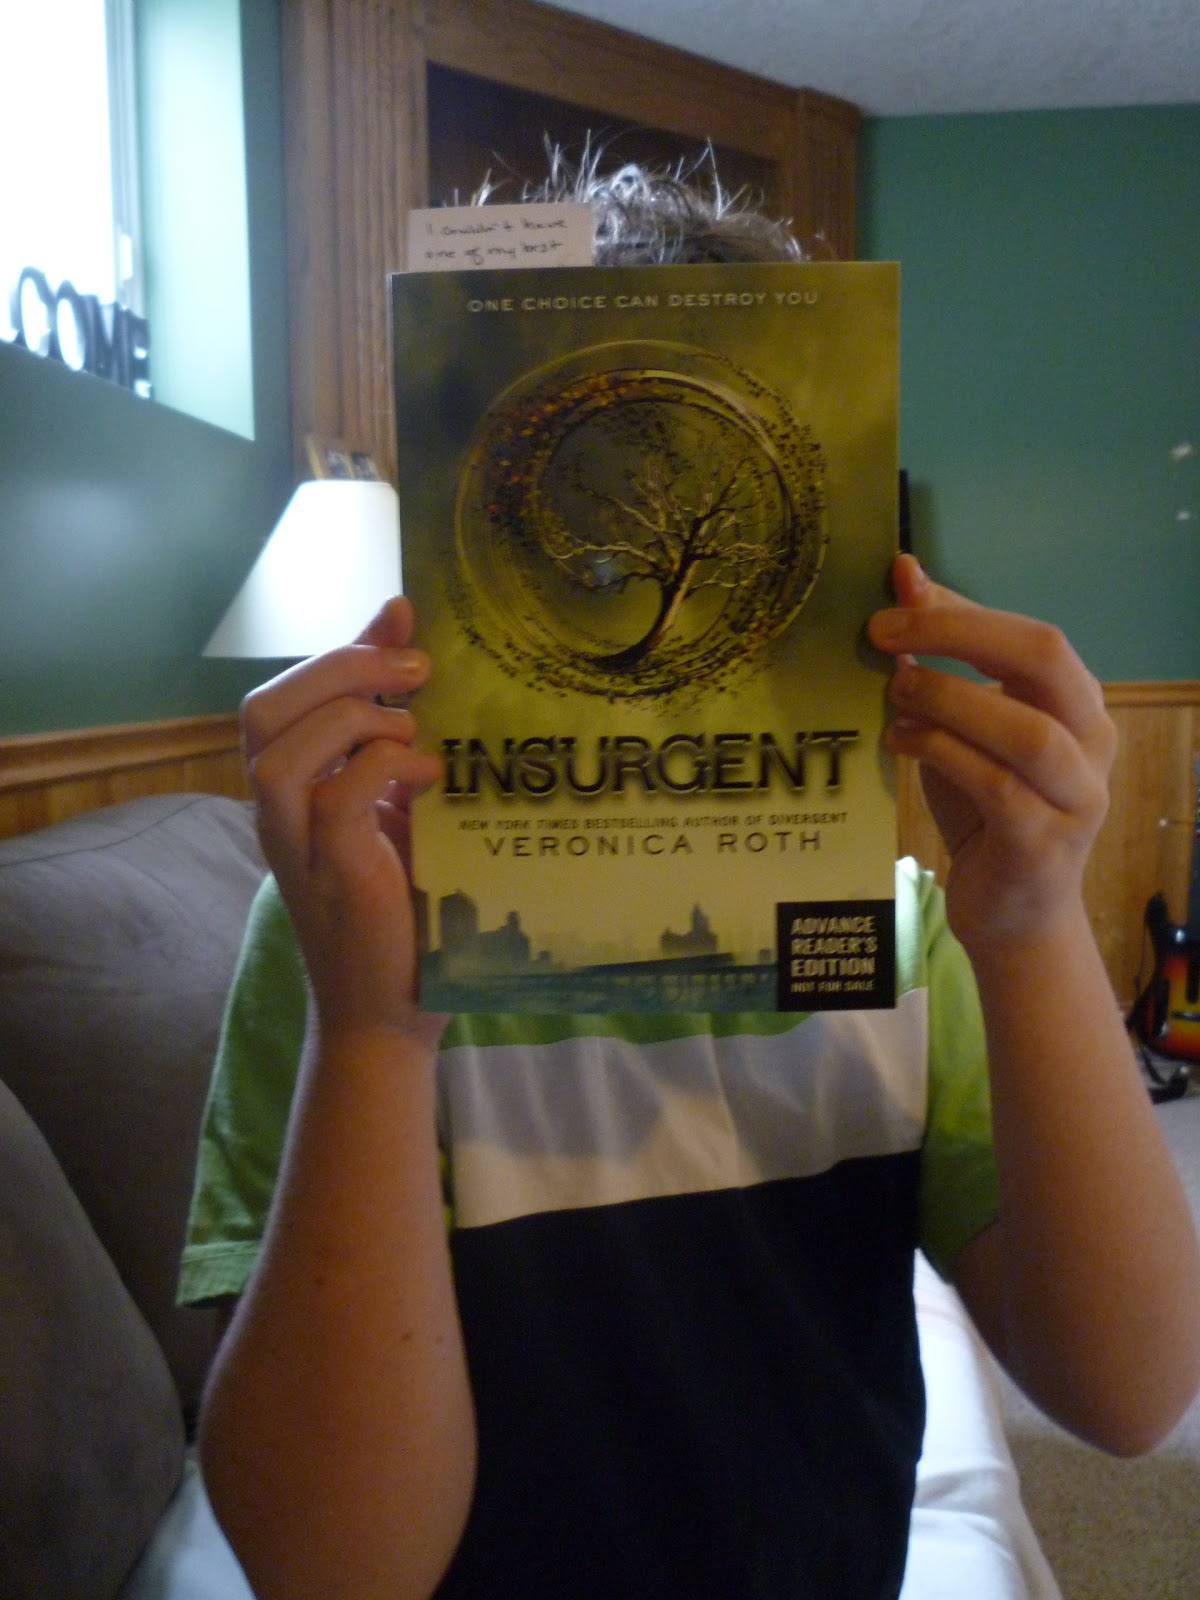 a short summary and critique of veronica roths book insurgent Divergent is the debut novel of american novelist veronica roth, published by harper collins children's books in 2011 the novel is the first of the divergent trilogy, a series of young adult dystopian novels set in the divergent universe.